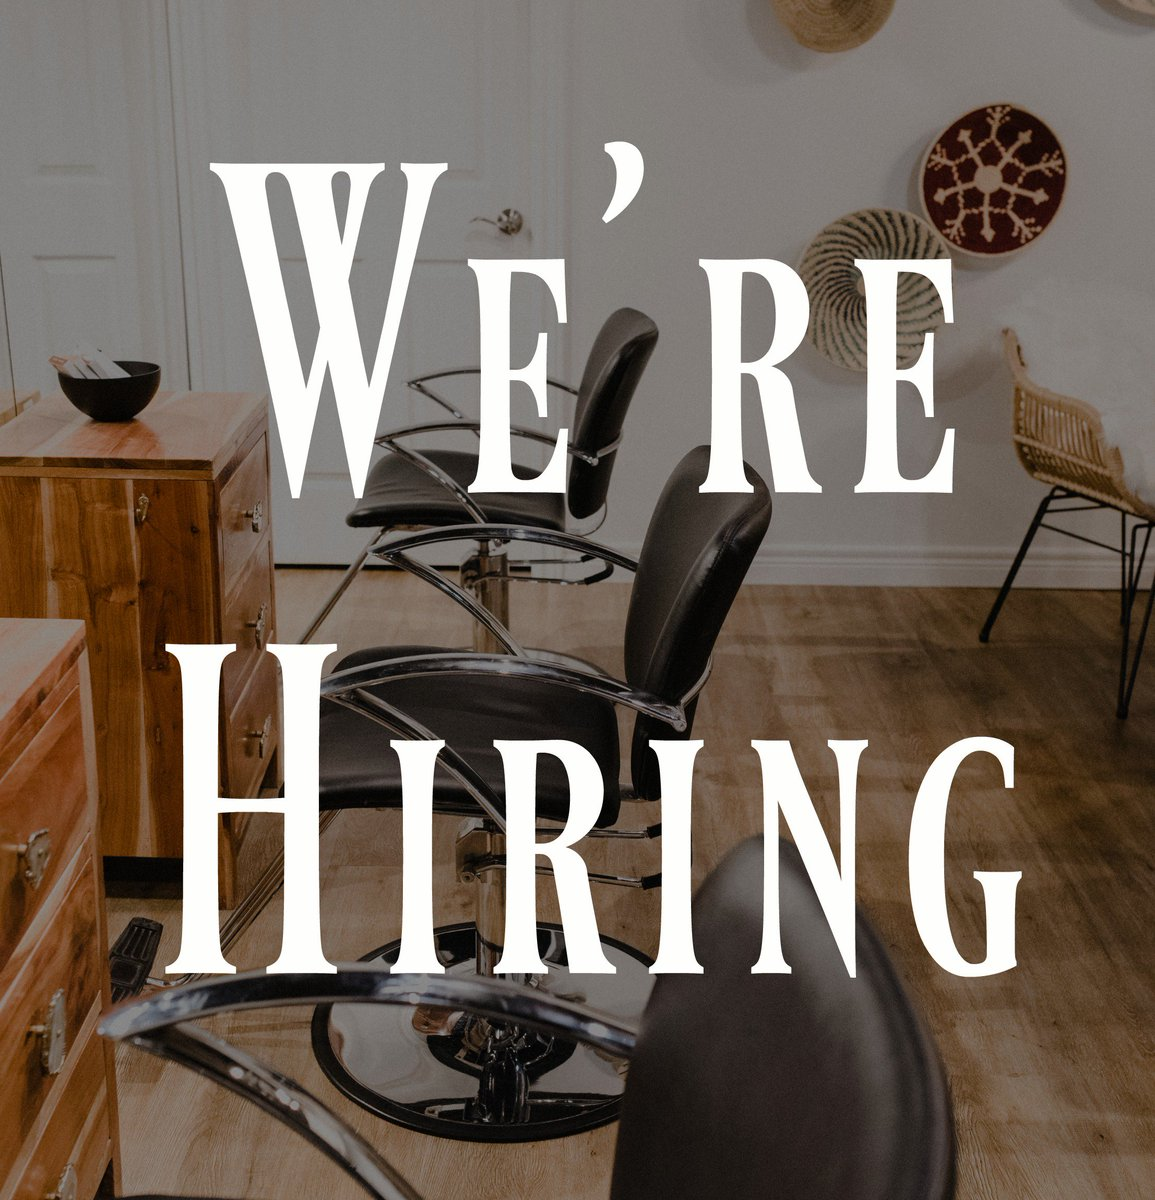 we are in search of a hair stylist salon assistant know someone submit resumecover letter to reneesalonwispcom burlon hairsalonpictwittercom - Salon Assistant